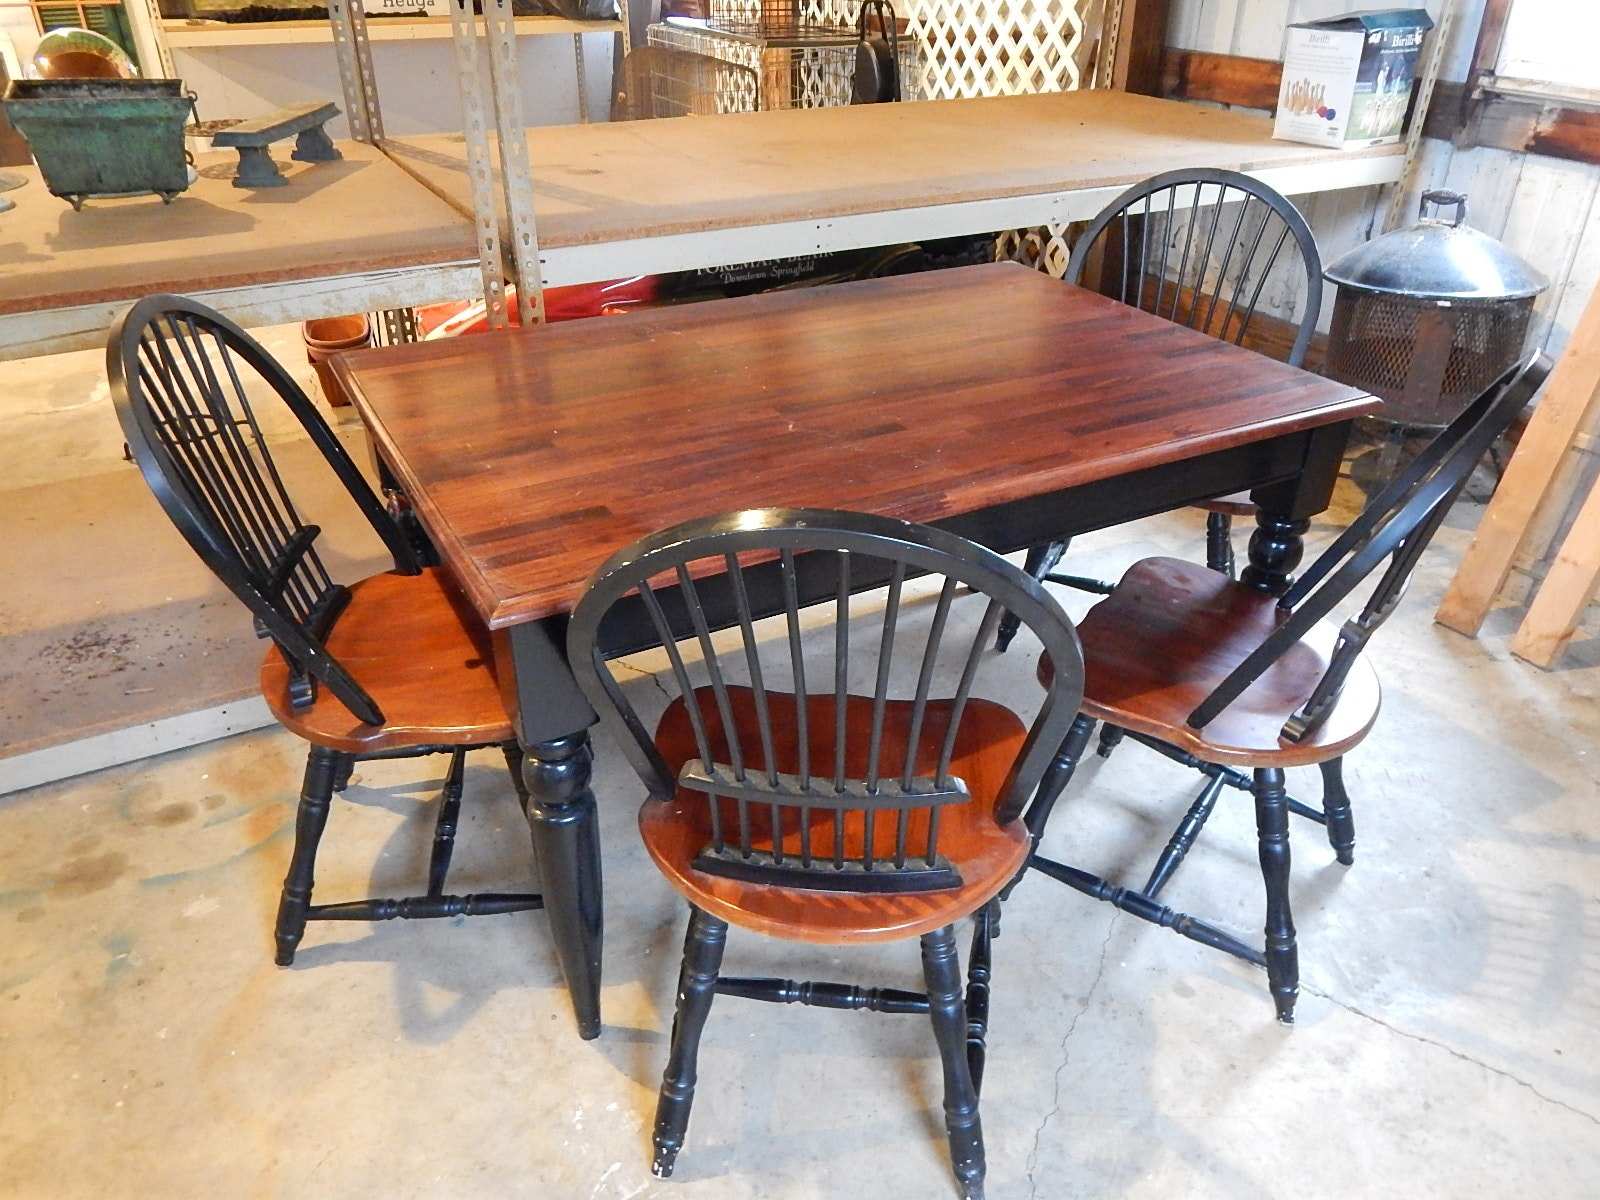 Farmhouse Style Dining Table and Four Chairs